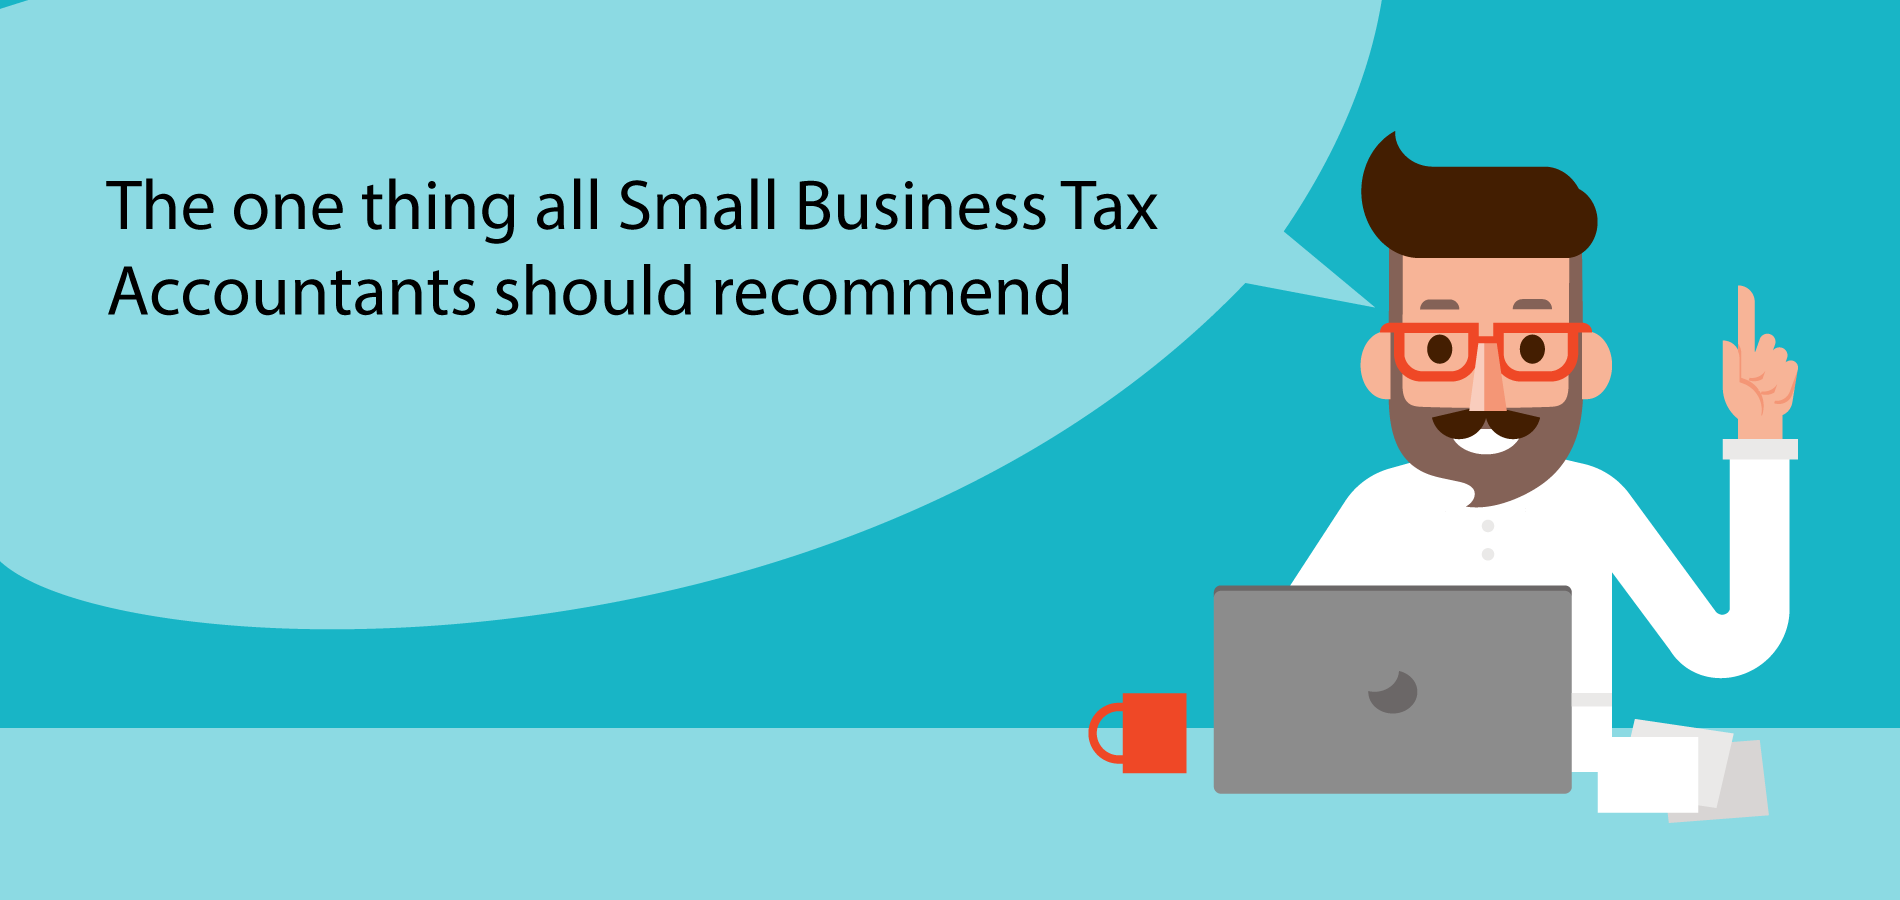 The one thing all Small Business Tax Accountants should recommend